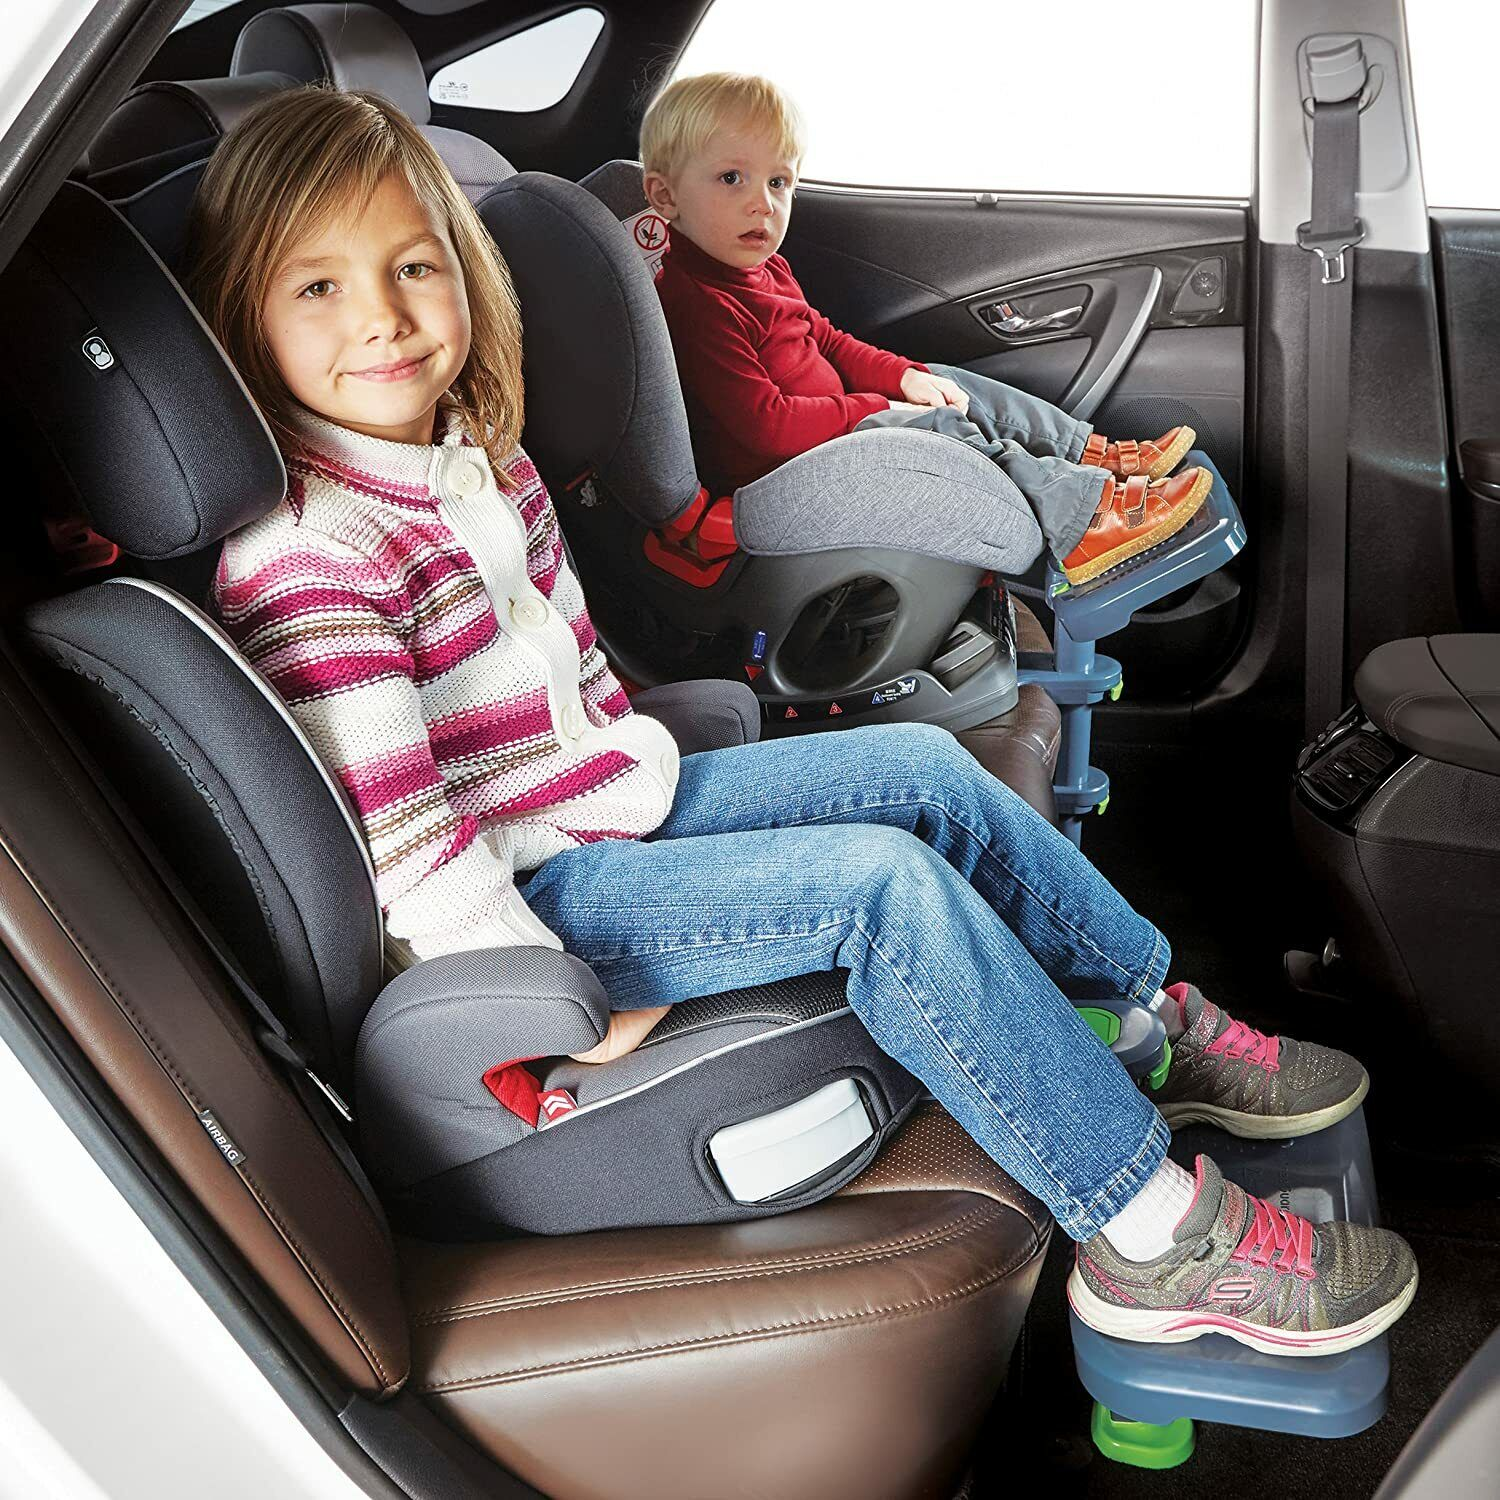 Kneeguard Kids Car Seat Foot Rest for Children and Babies.